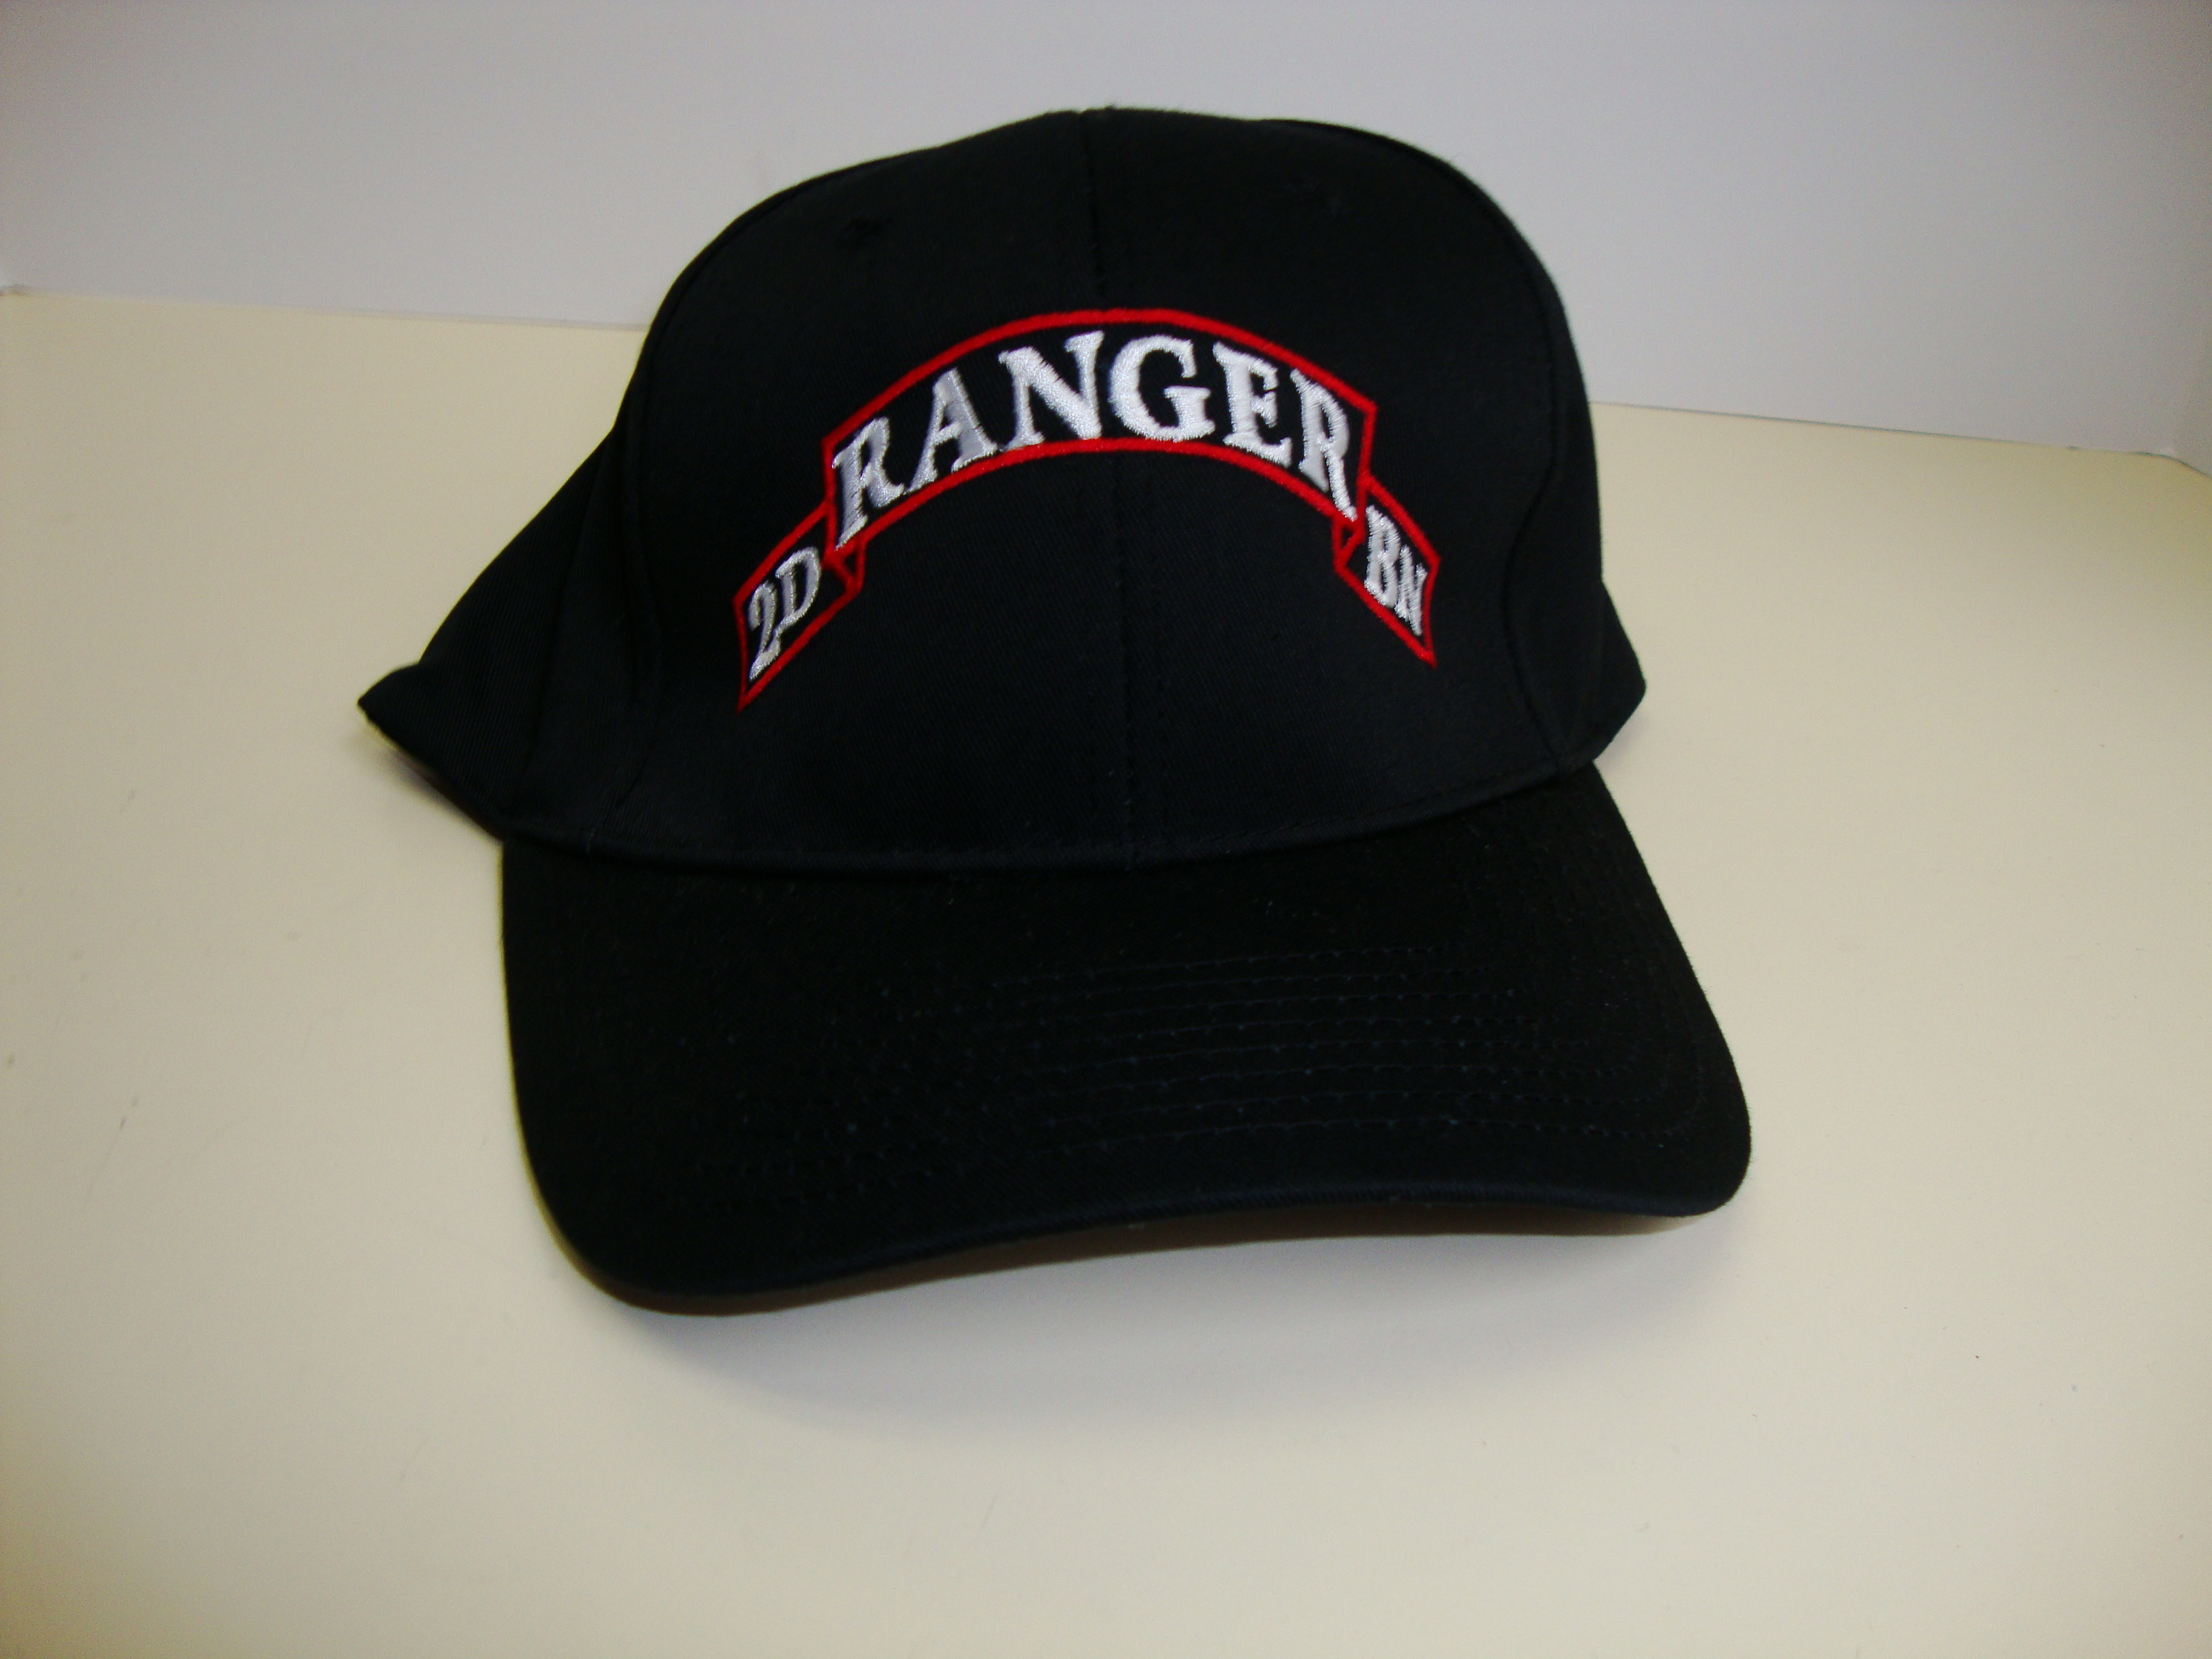 00b3d90f5 2nd Ranger Direct Embroidered Black Ball Cap | North Bay Listings